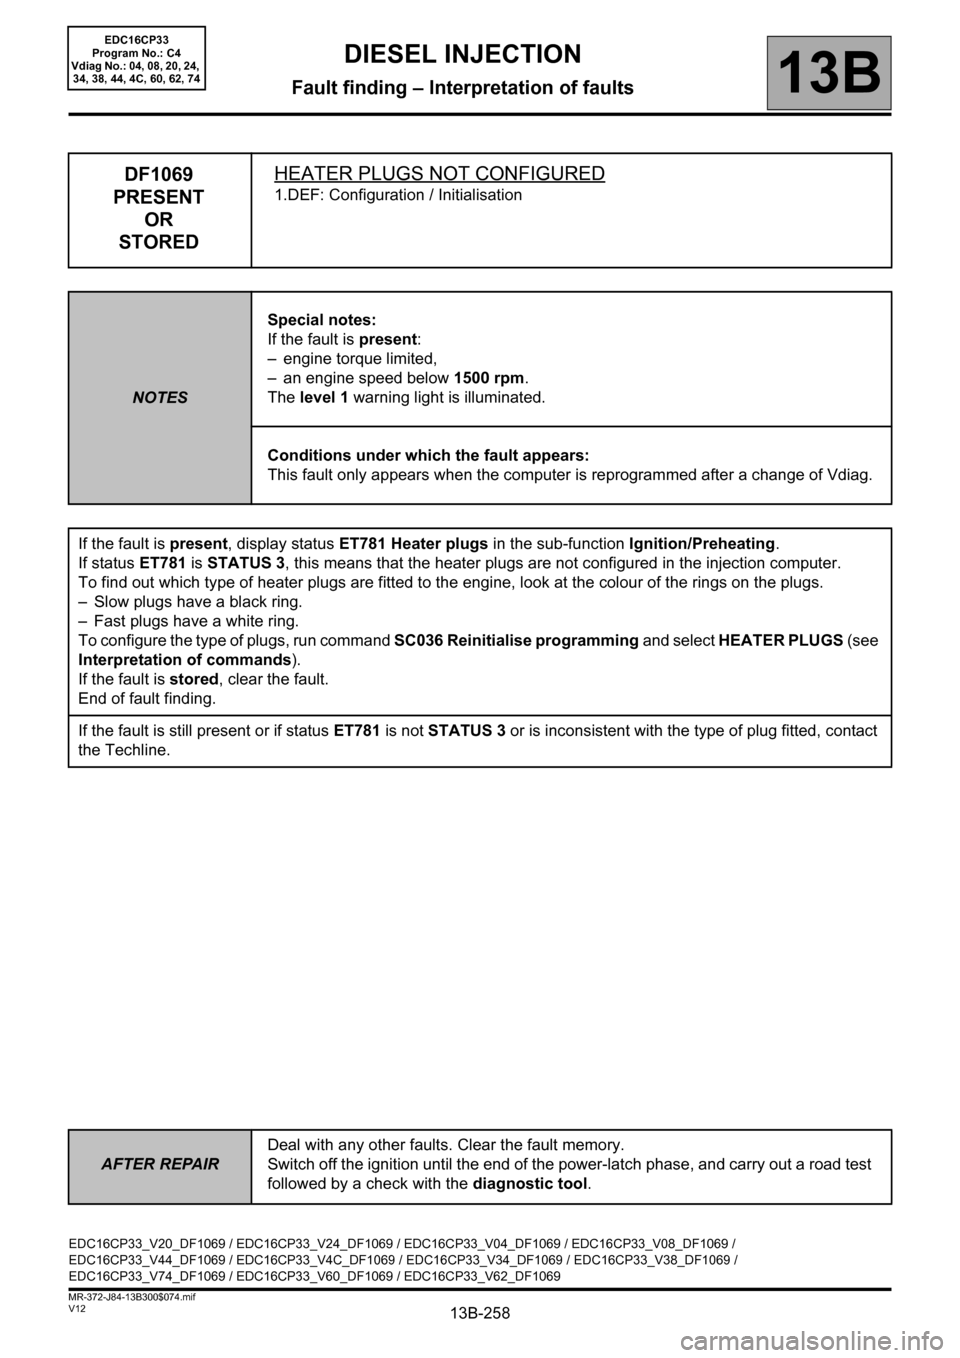 RENAULT SCENIC 2012 J95 / 3.G Engine And Peripherals EDC16CP33 Workshop Manual, Page 258